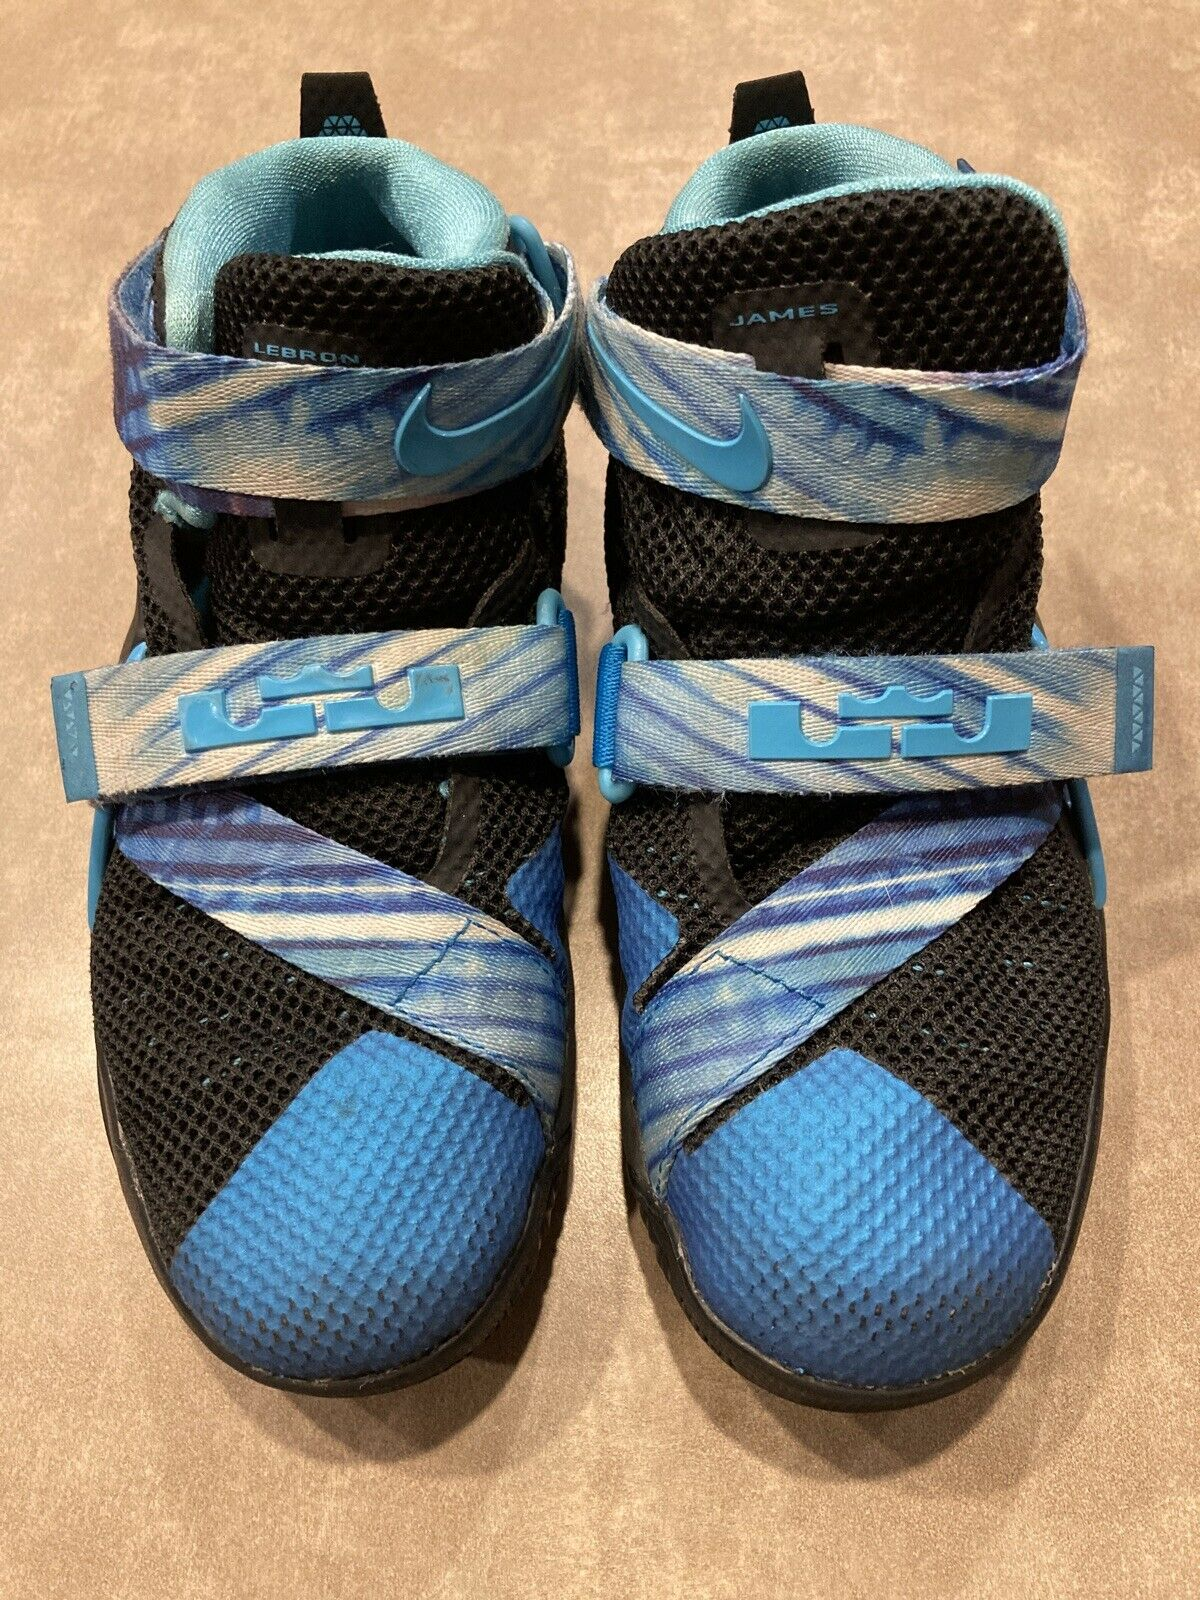 NIKE~Lebron James~Soldier XC, Black and Blue Basketball Shoes, Toddler Size 13 on eBay thumbnail